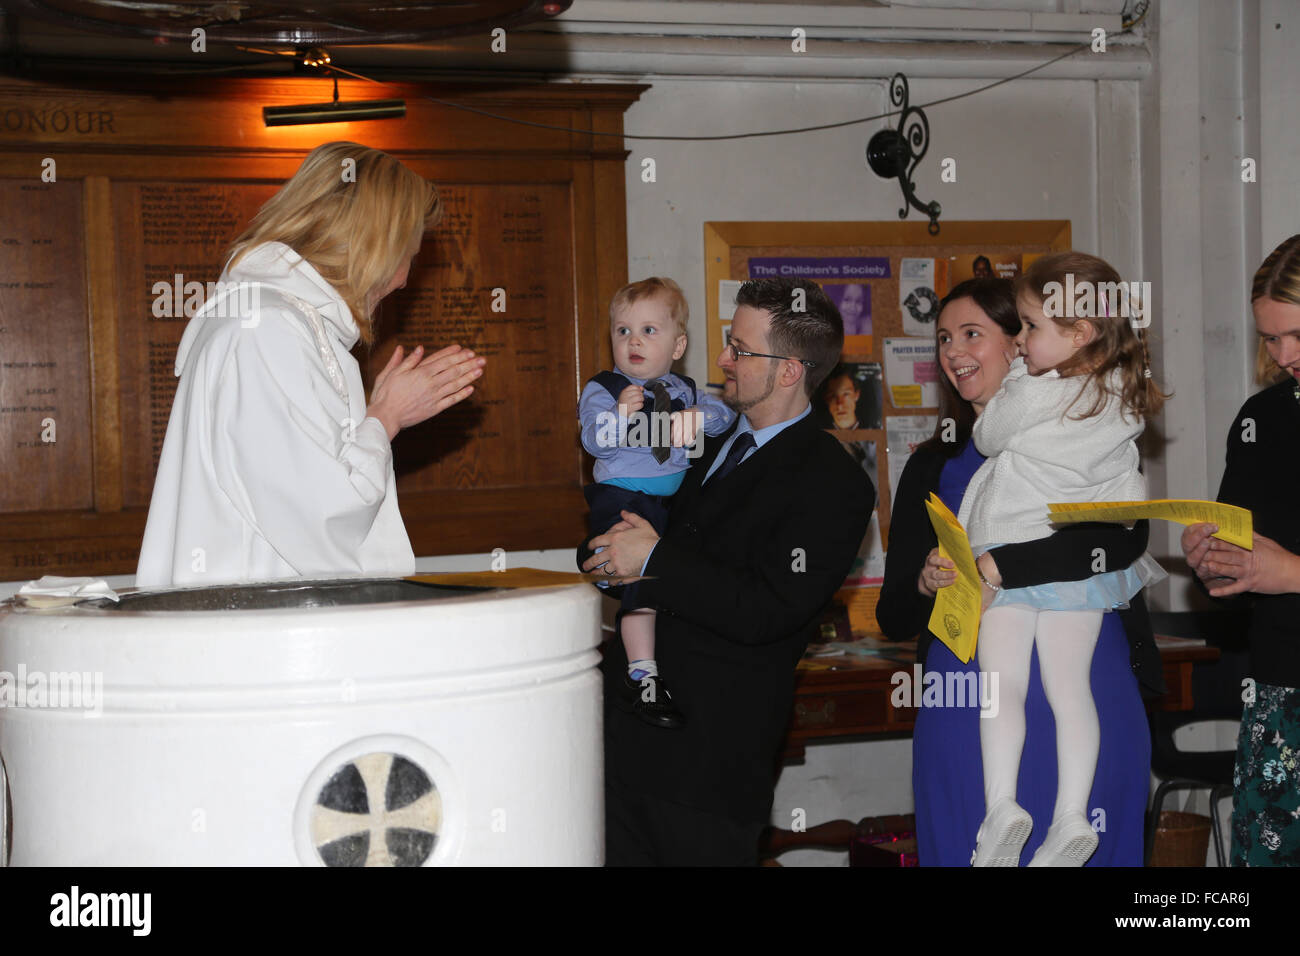 Christening At St Mary's Church Caterham On The Hill Surrey England Female Priest Standing By Font Clapping - Stock Image